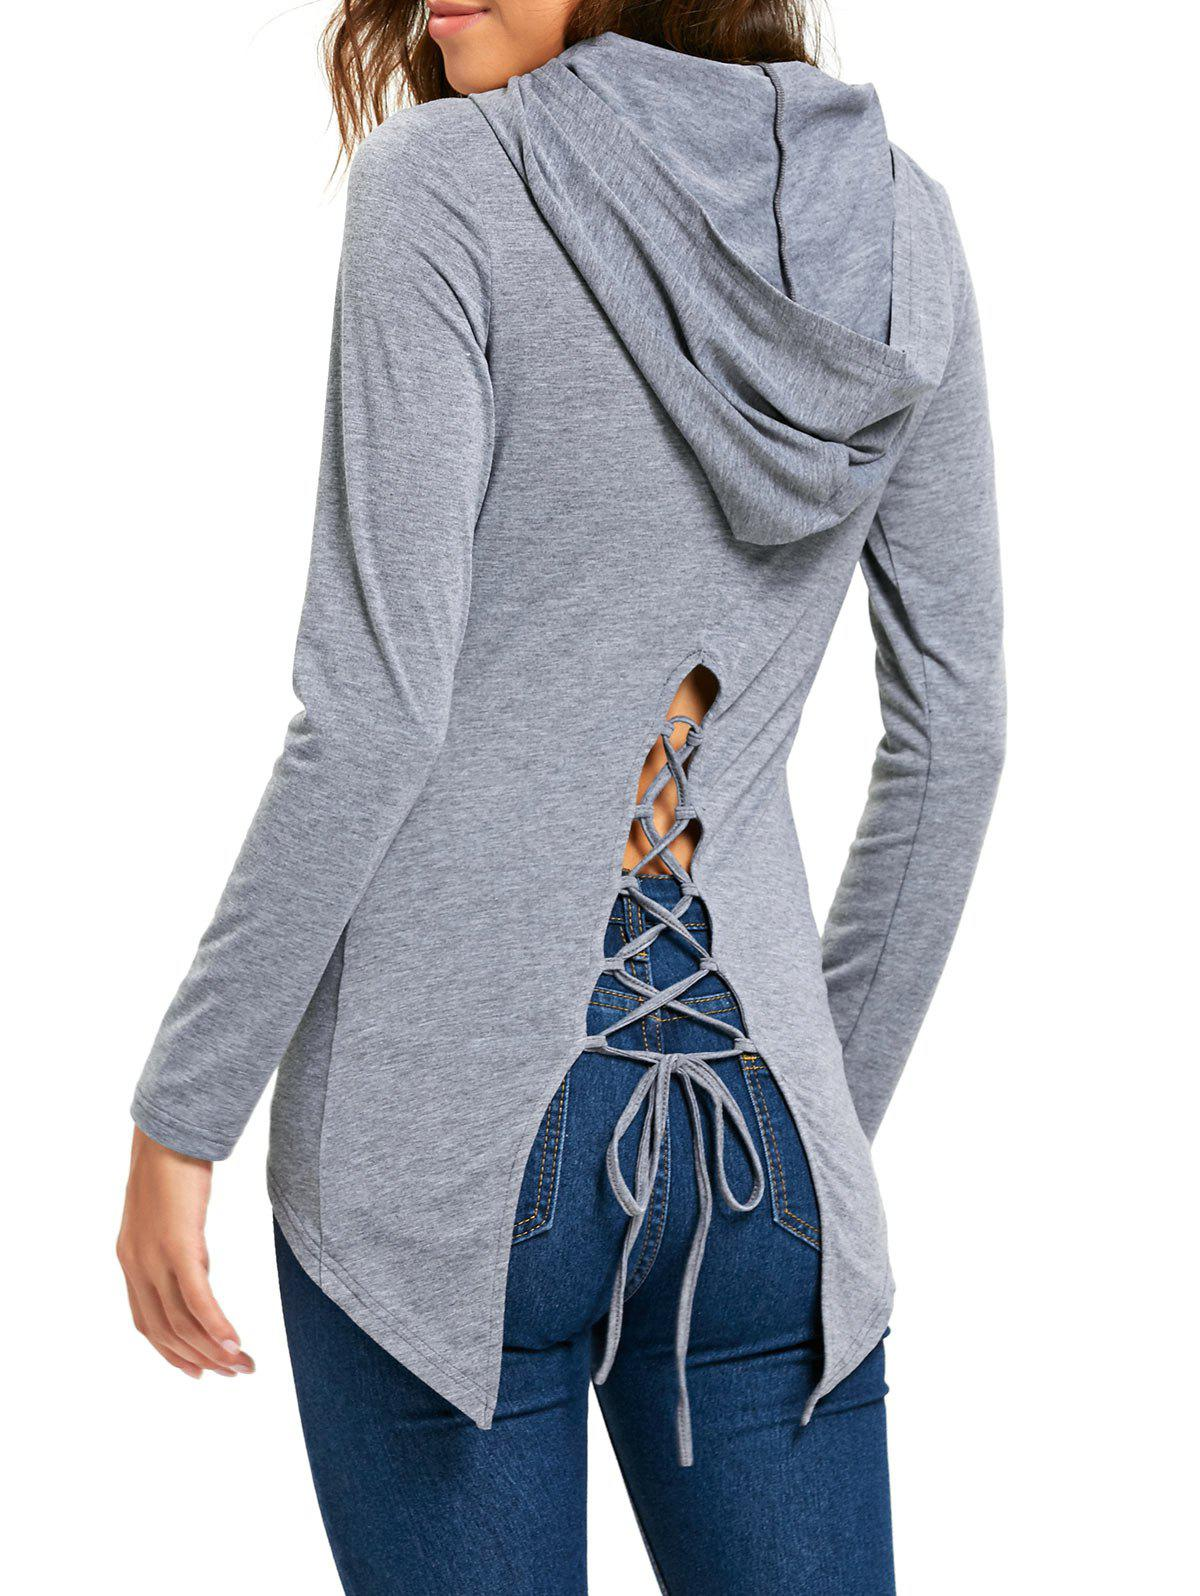 Hooded Lace Up High Low Tunic T-shirt - GRAY M